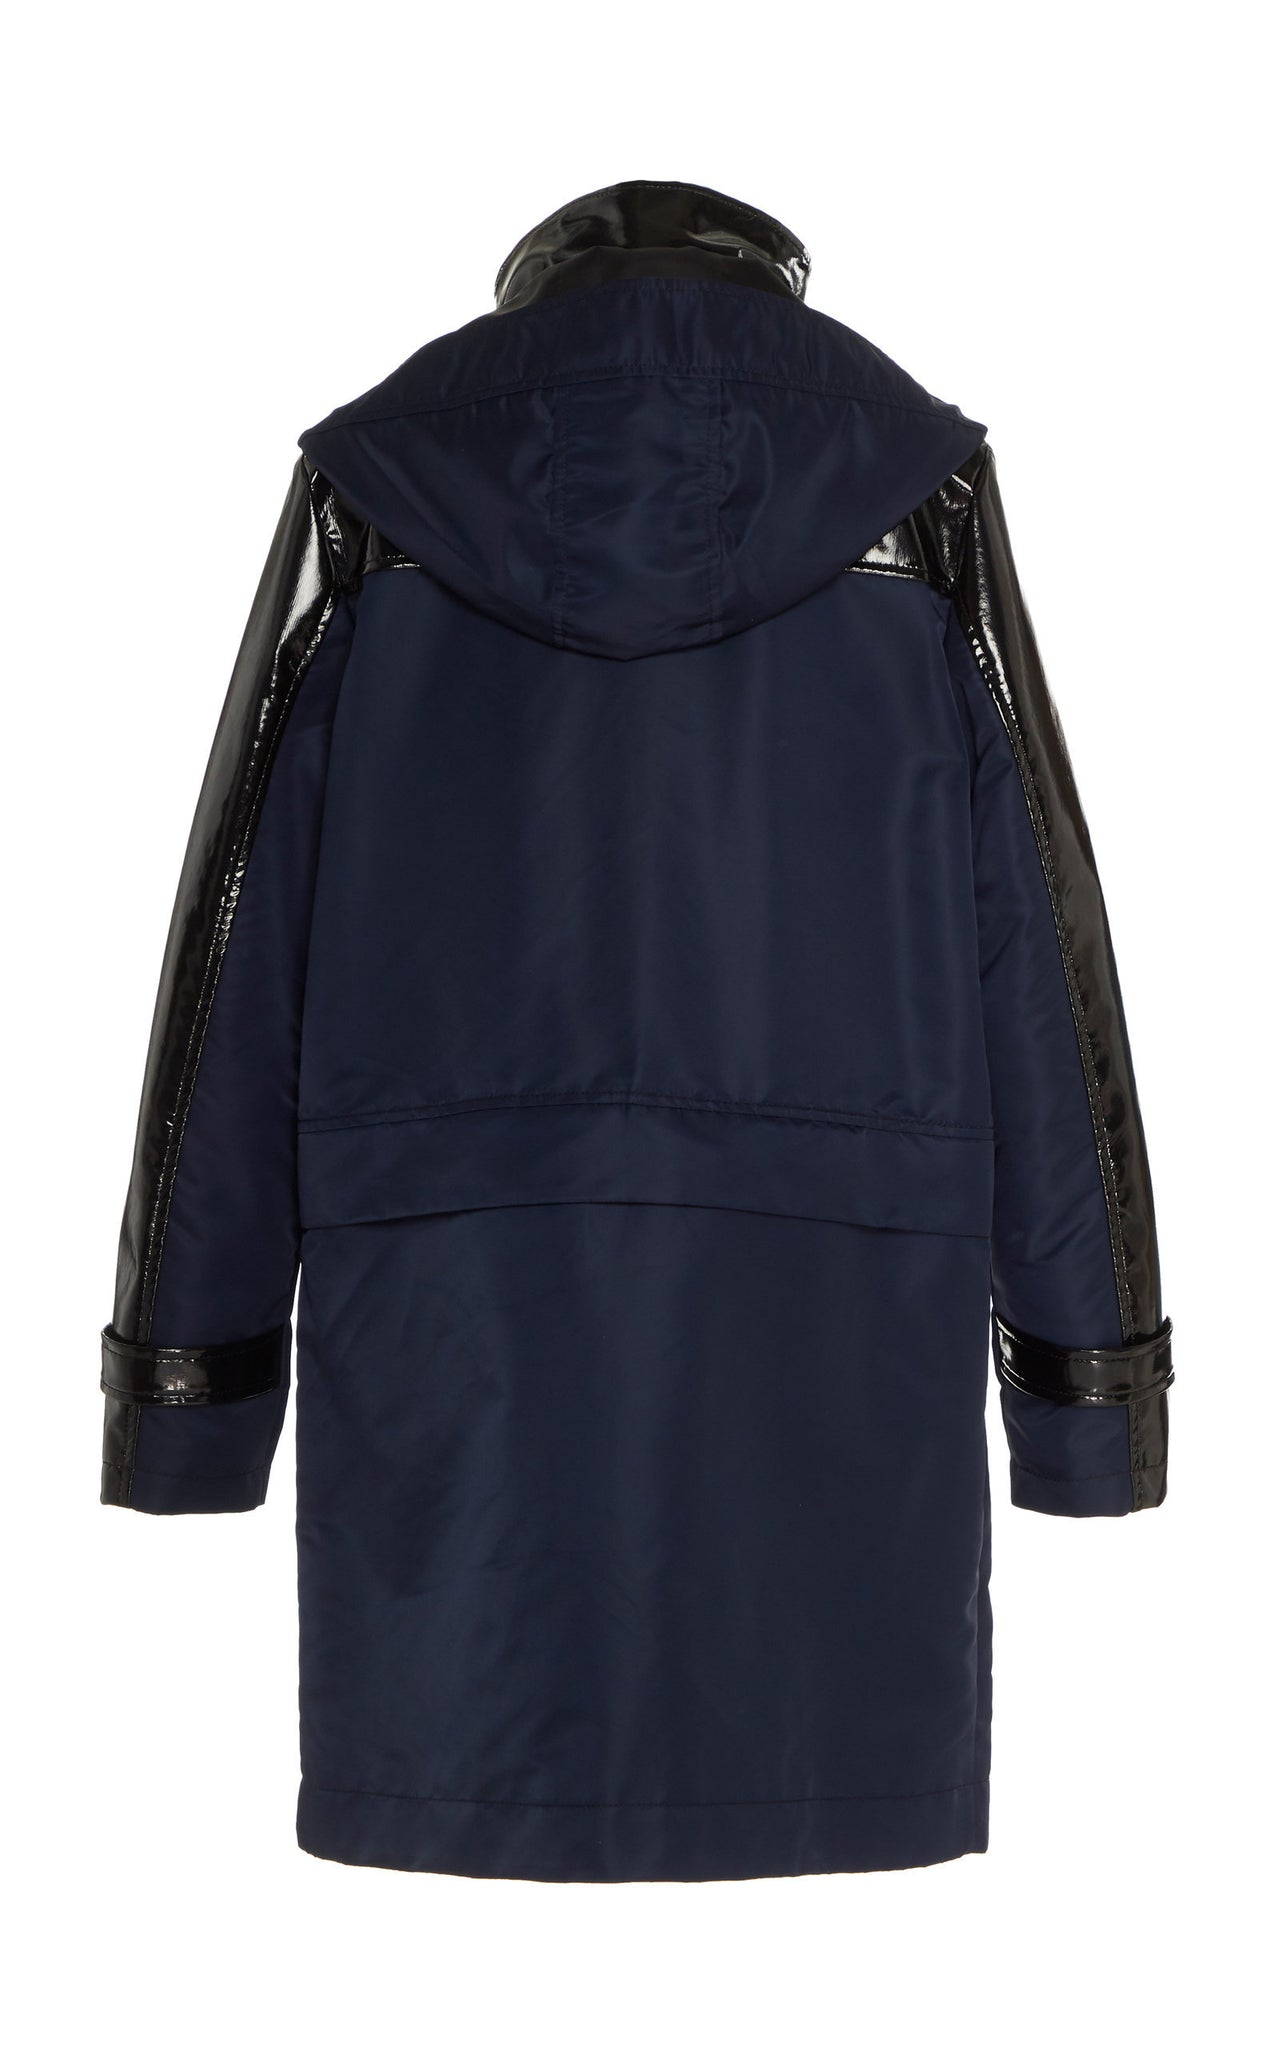 NAVY GLOSSED CONVERTIBLE RAINCOAT